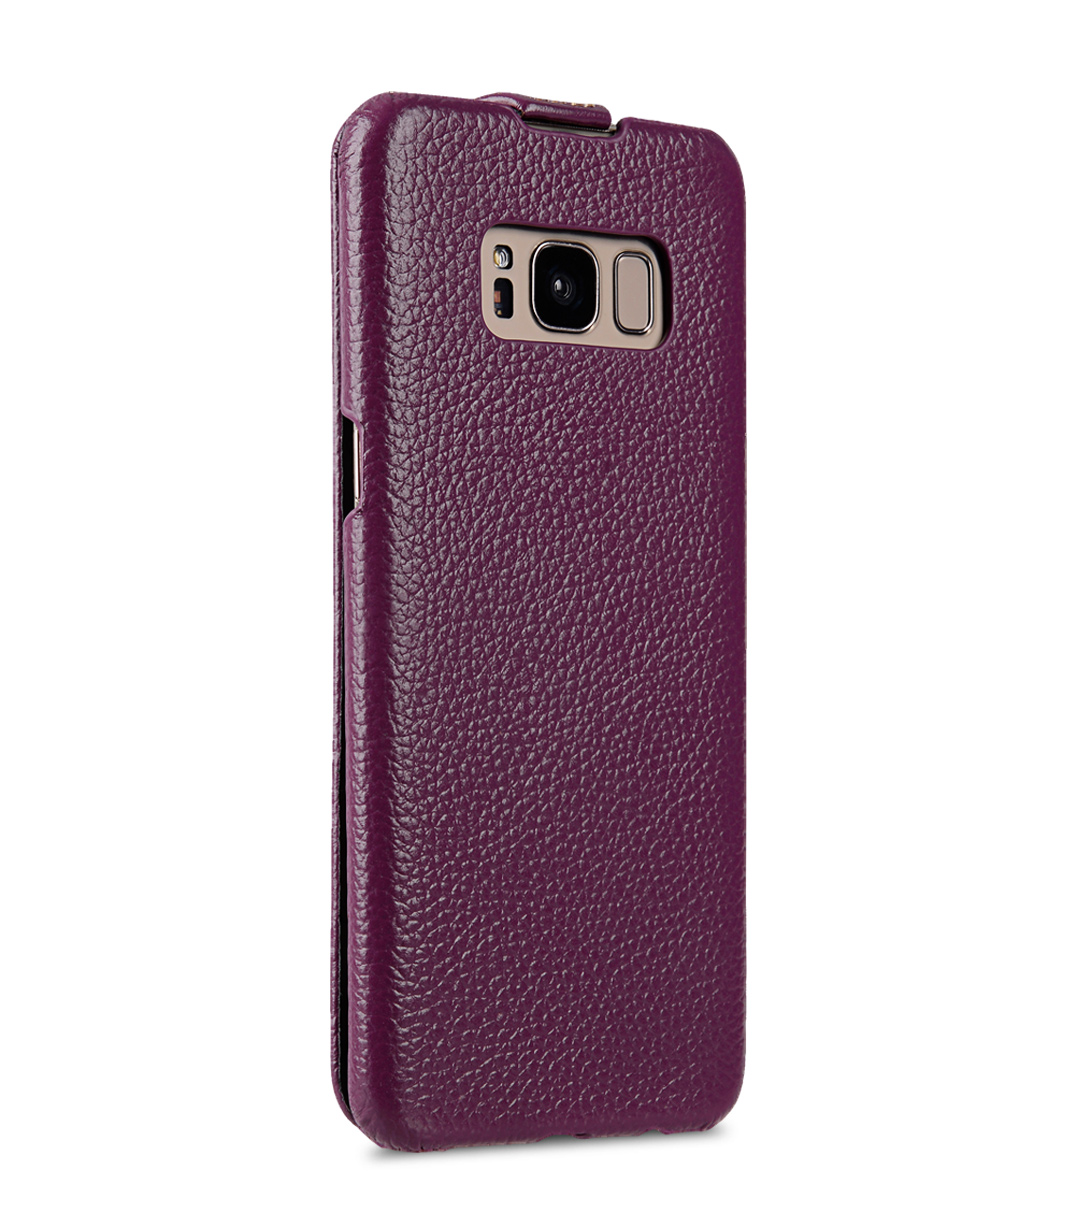 Melkco Premium Leather Case for Samsung Galaxy S8 Plus - Jacka Type ( Purple LC )